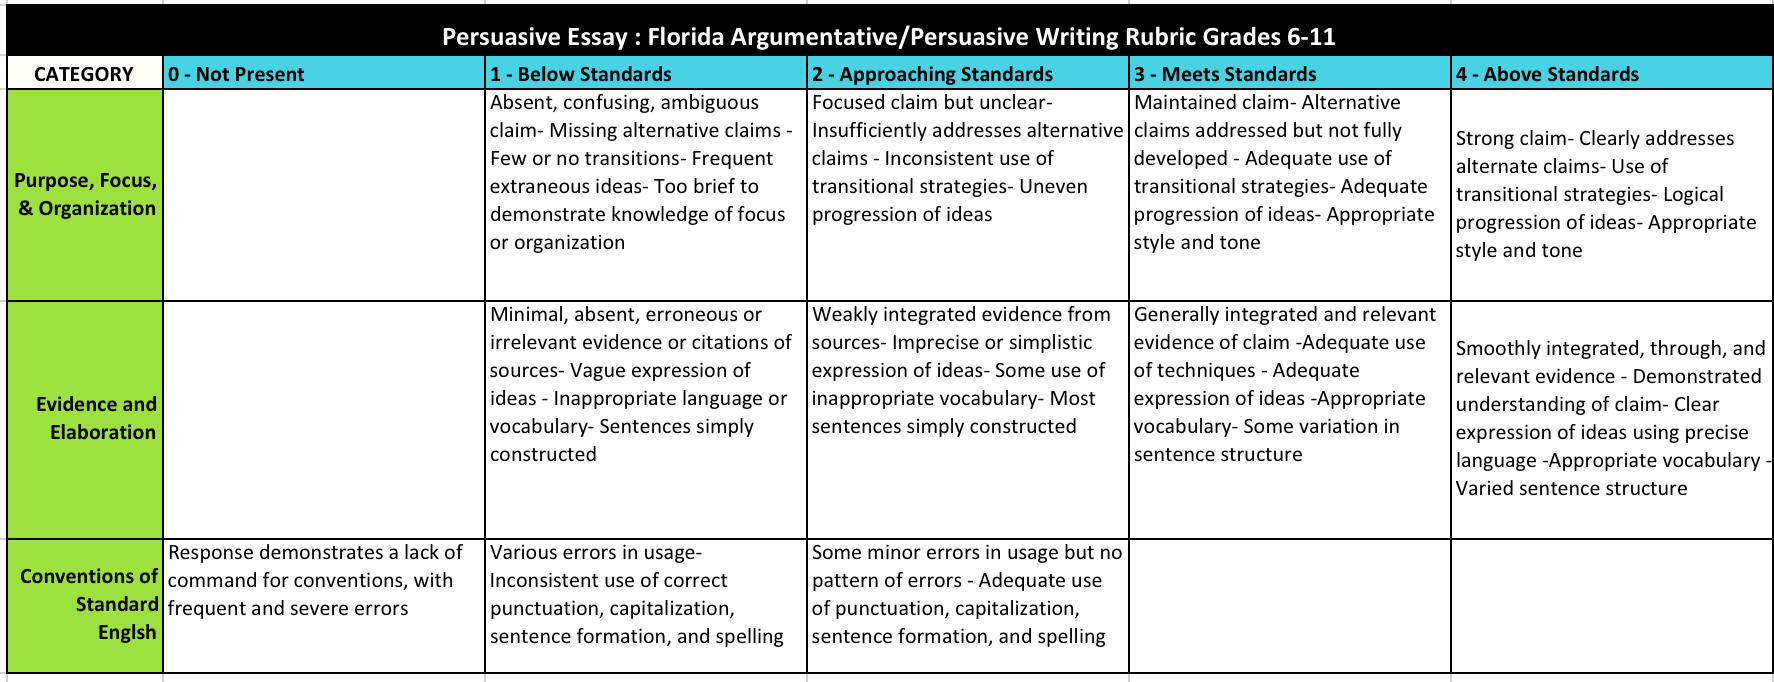 Compare and Contrast Rubric ReadWriteThink lbartman com  Compare and  Contrast Rubric ReadWriteThink lbartman com    Descriptive Writing Rubric  Grade     Allstar Construction